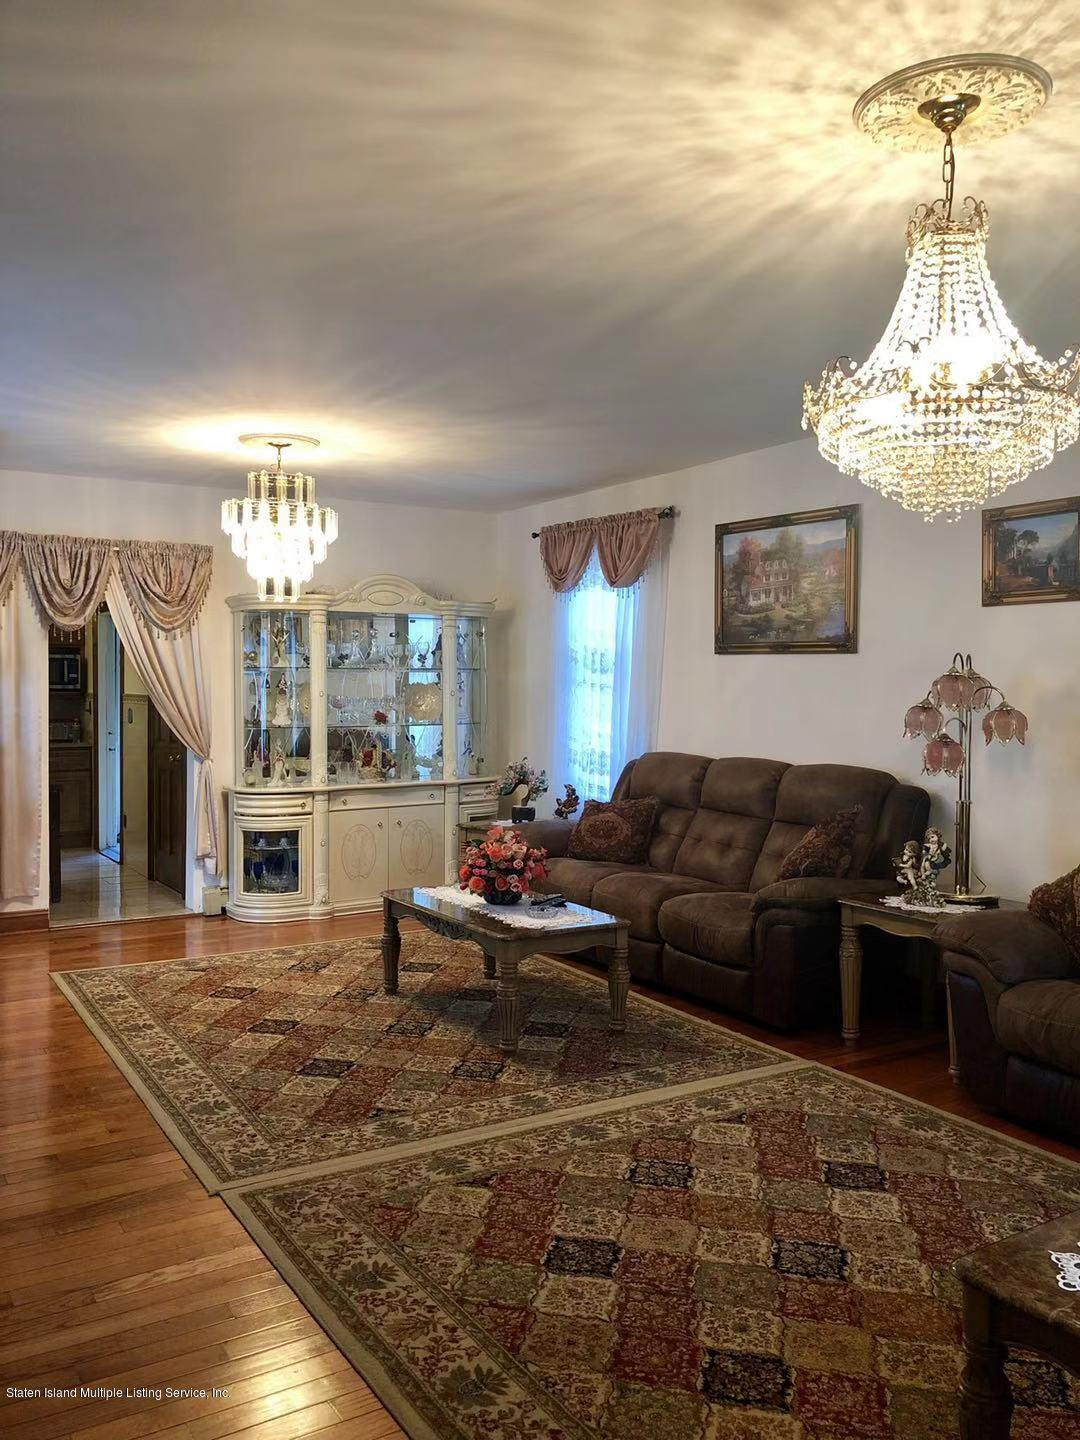 Single Family - Detached 1123 Forest Avenue  Staten Island, NY 10310, MLS-1131376-12